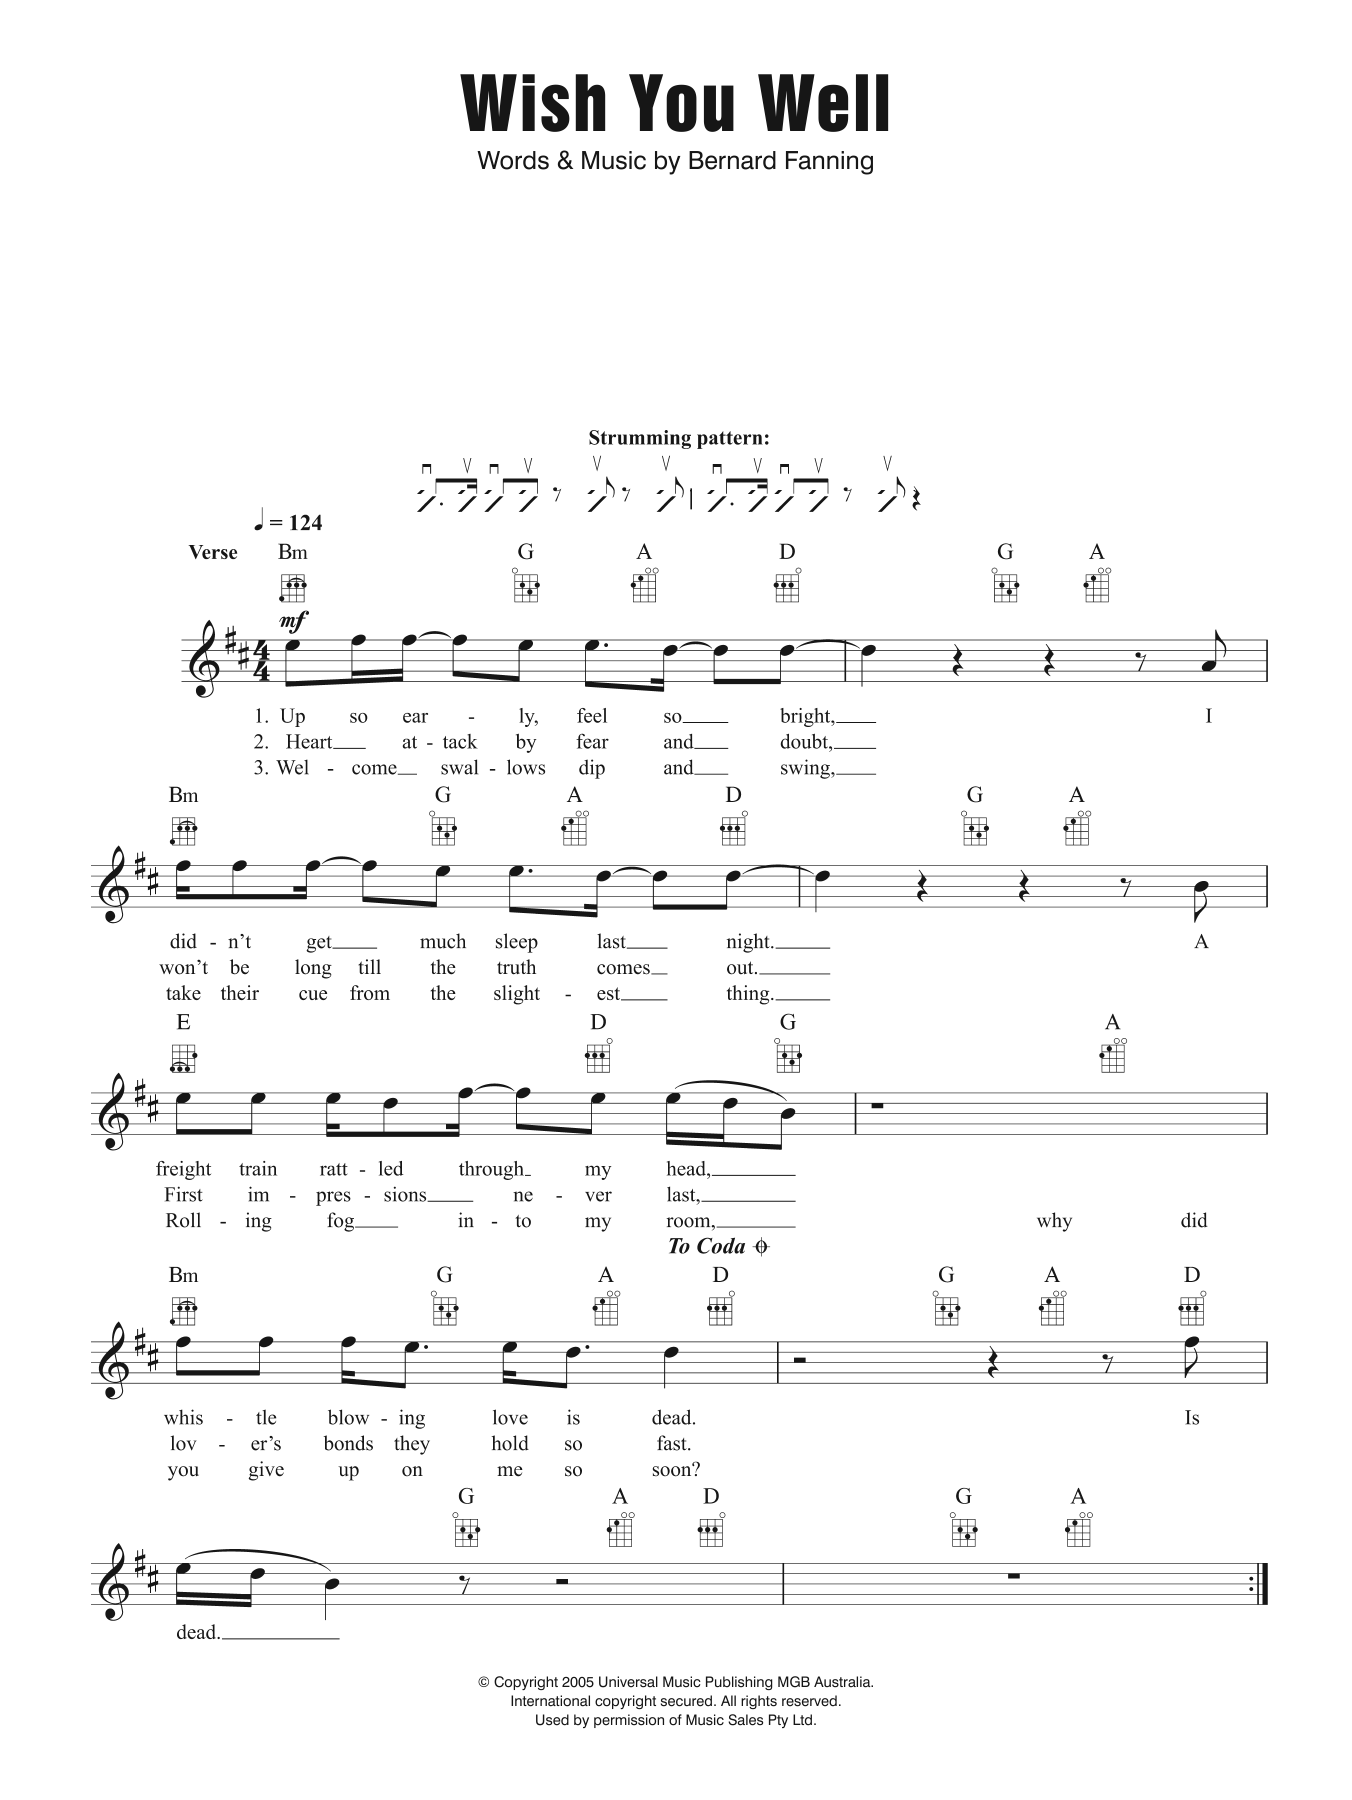 Wish You Well Sheet Music